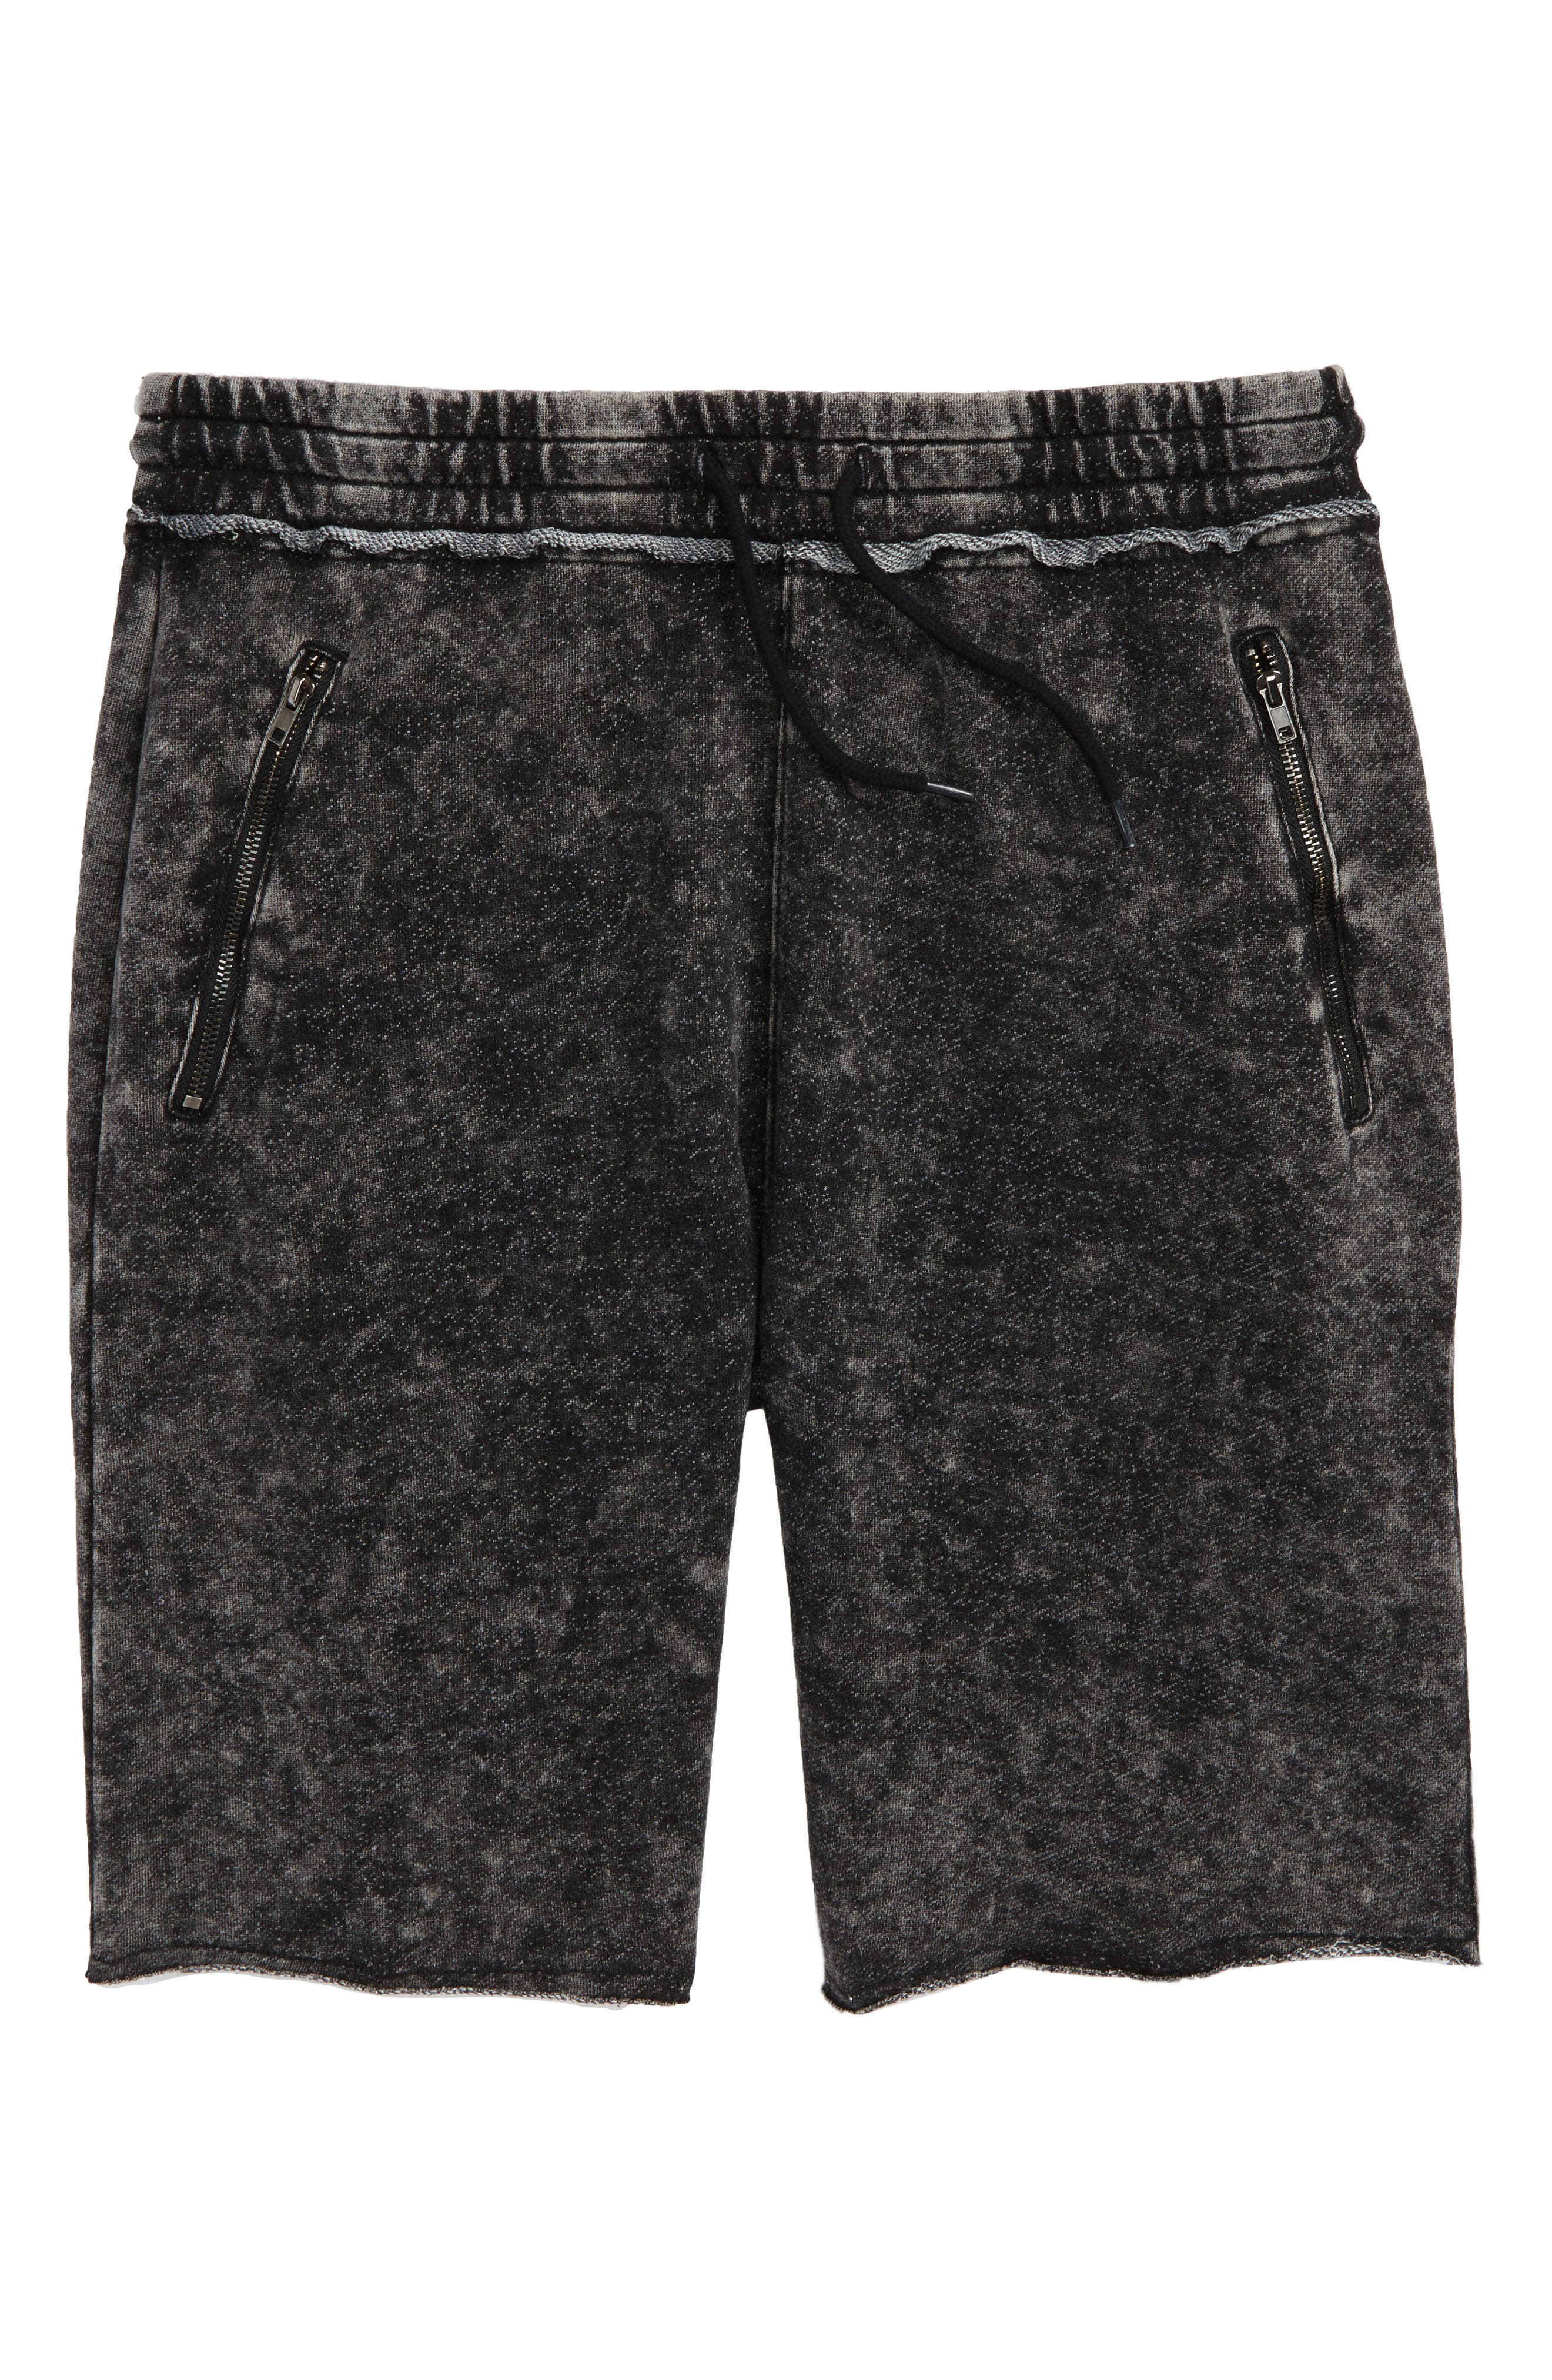 Raw Edge Knit Shorts,                         Main,                         color, 001